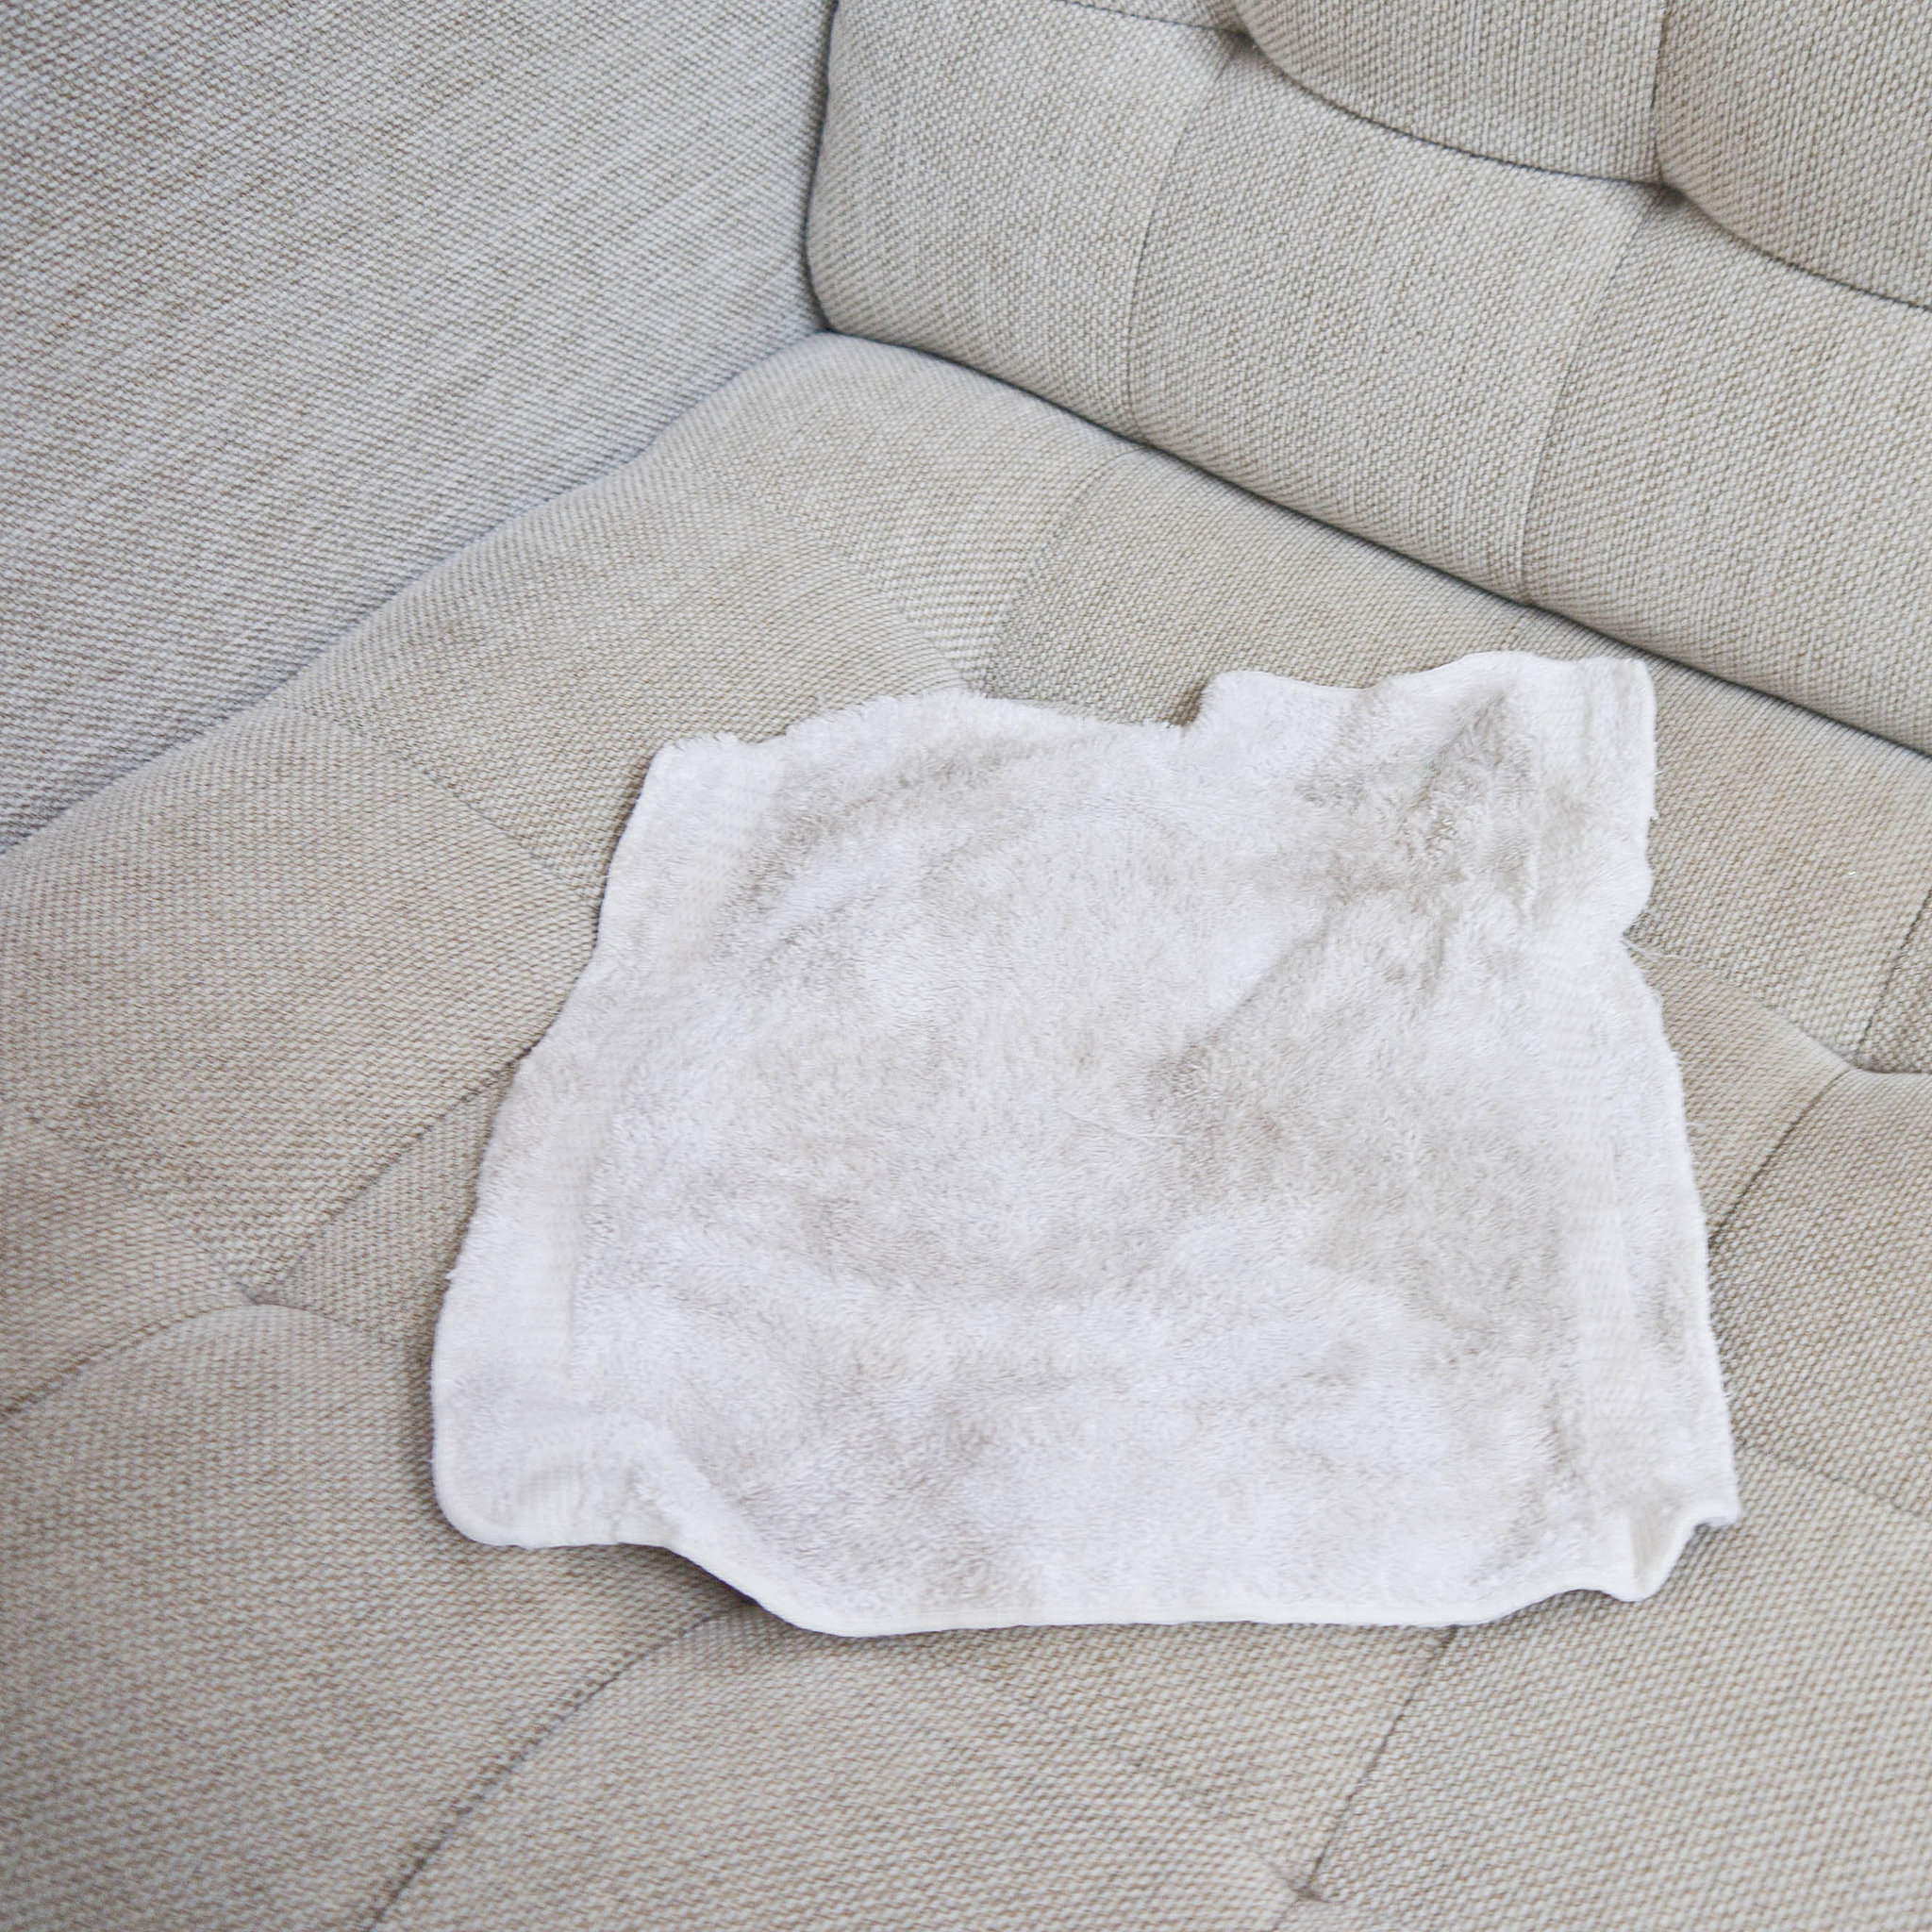 Excellent How To Clean A Natural Fabric Couch Popsugar Smart Living Short Links Chair Design For Home Short Linksinfo